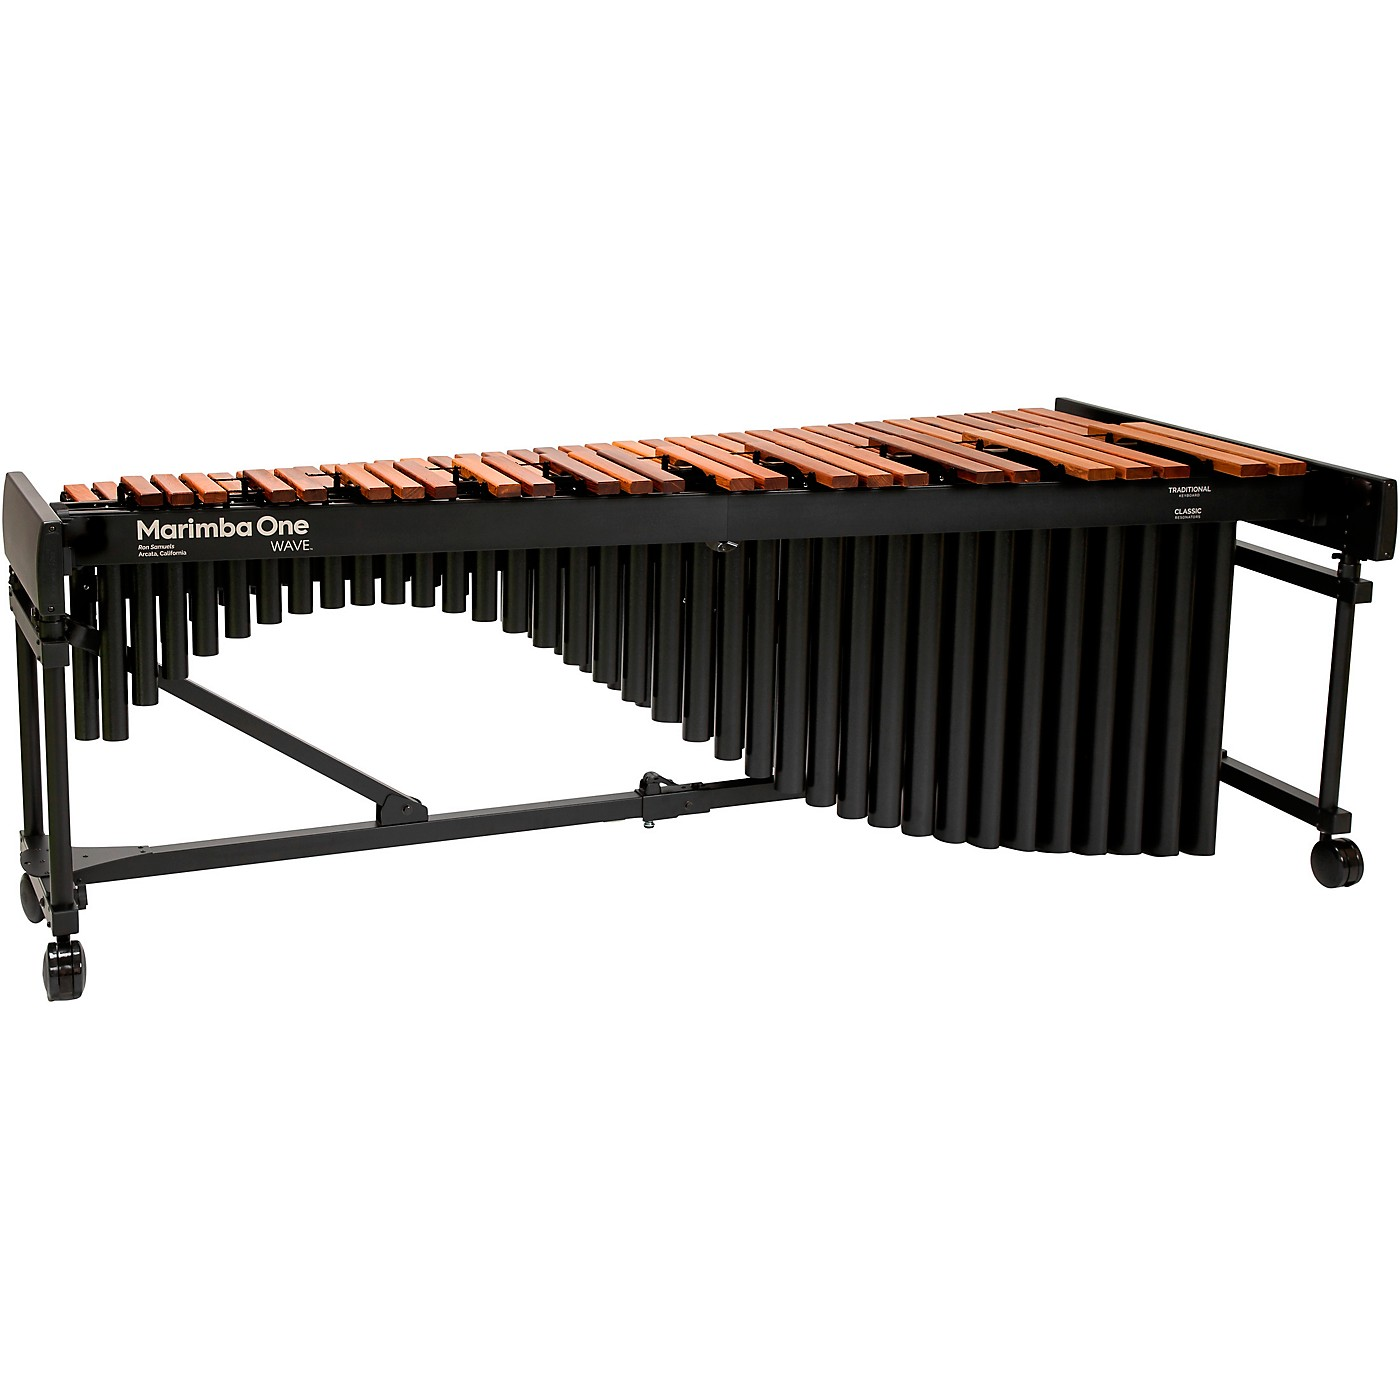 Marimba One Wave #9601 A442 5.0 Octave Marimba with Traditional Keyboard and Classic Resonators 4